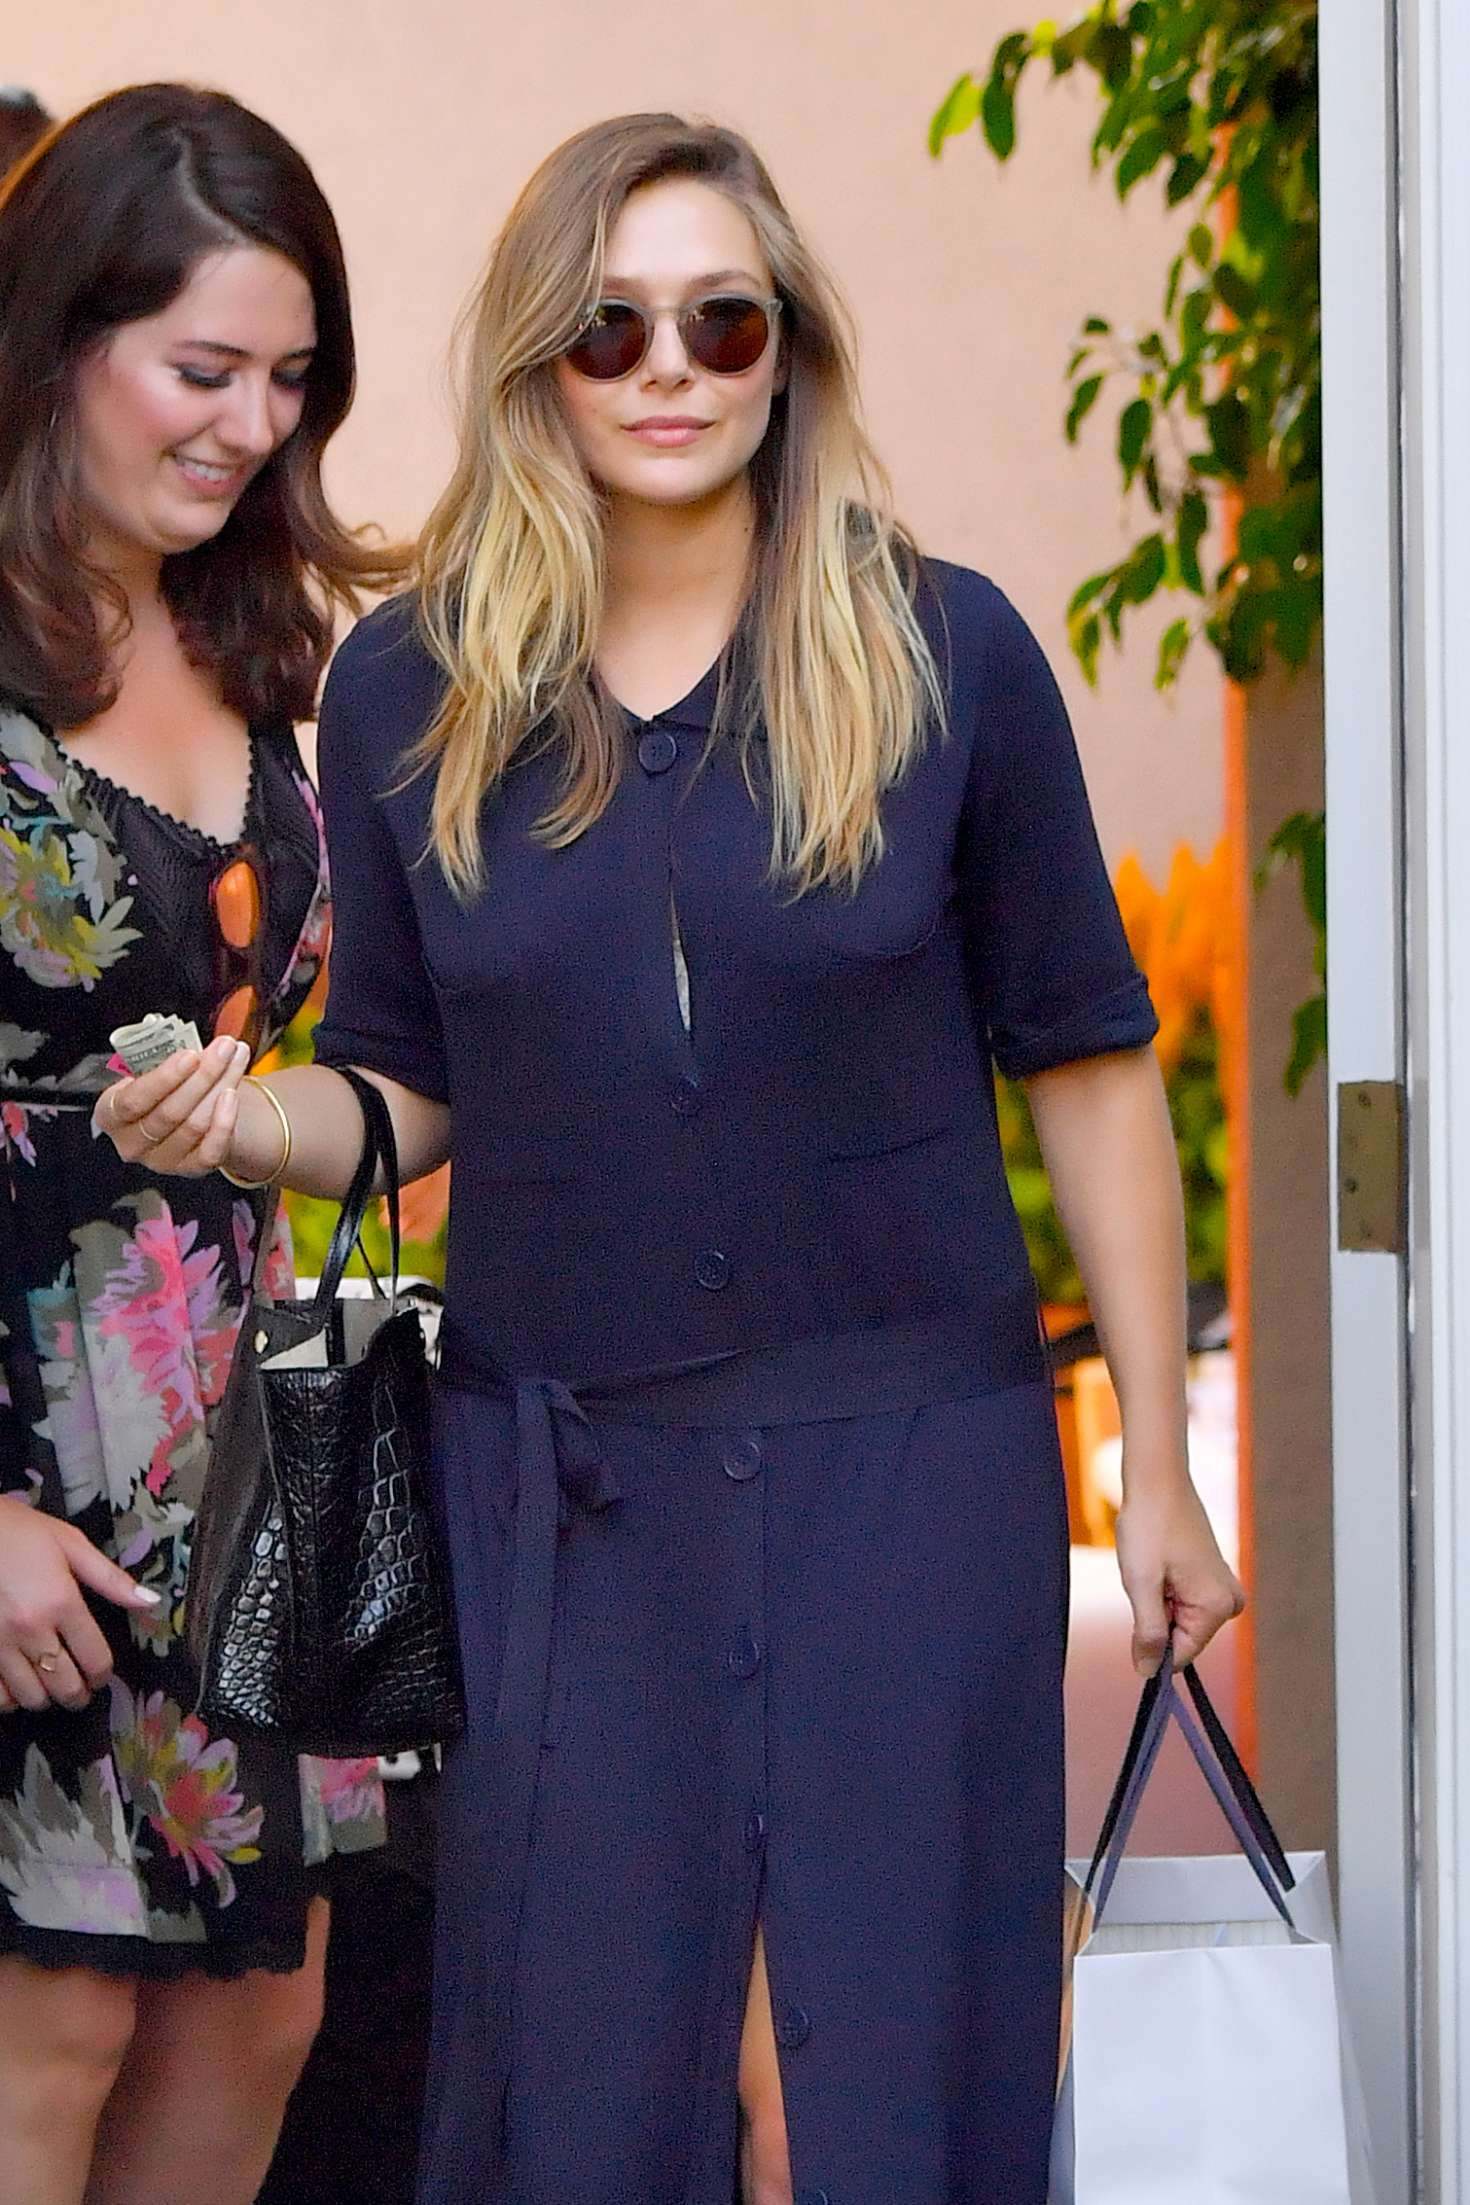 Elizabeth Olsen - Arriving to The in Style Gifting Suite in Brentwood